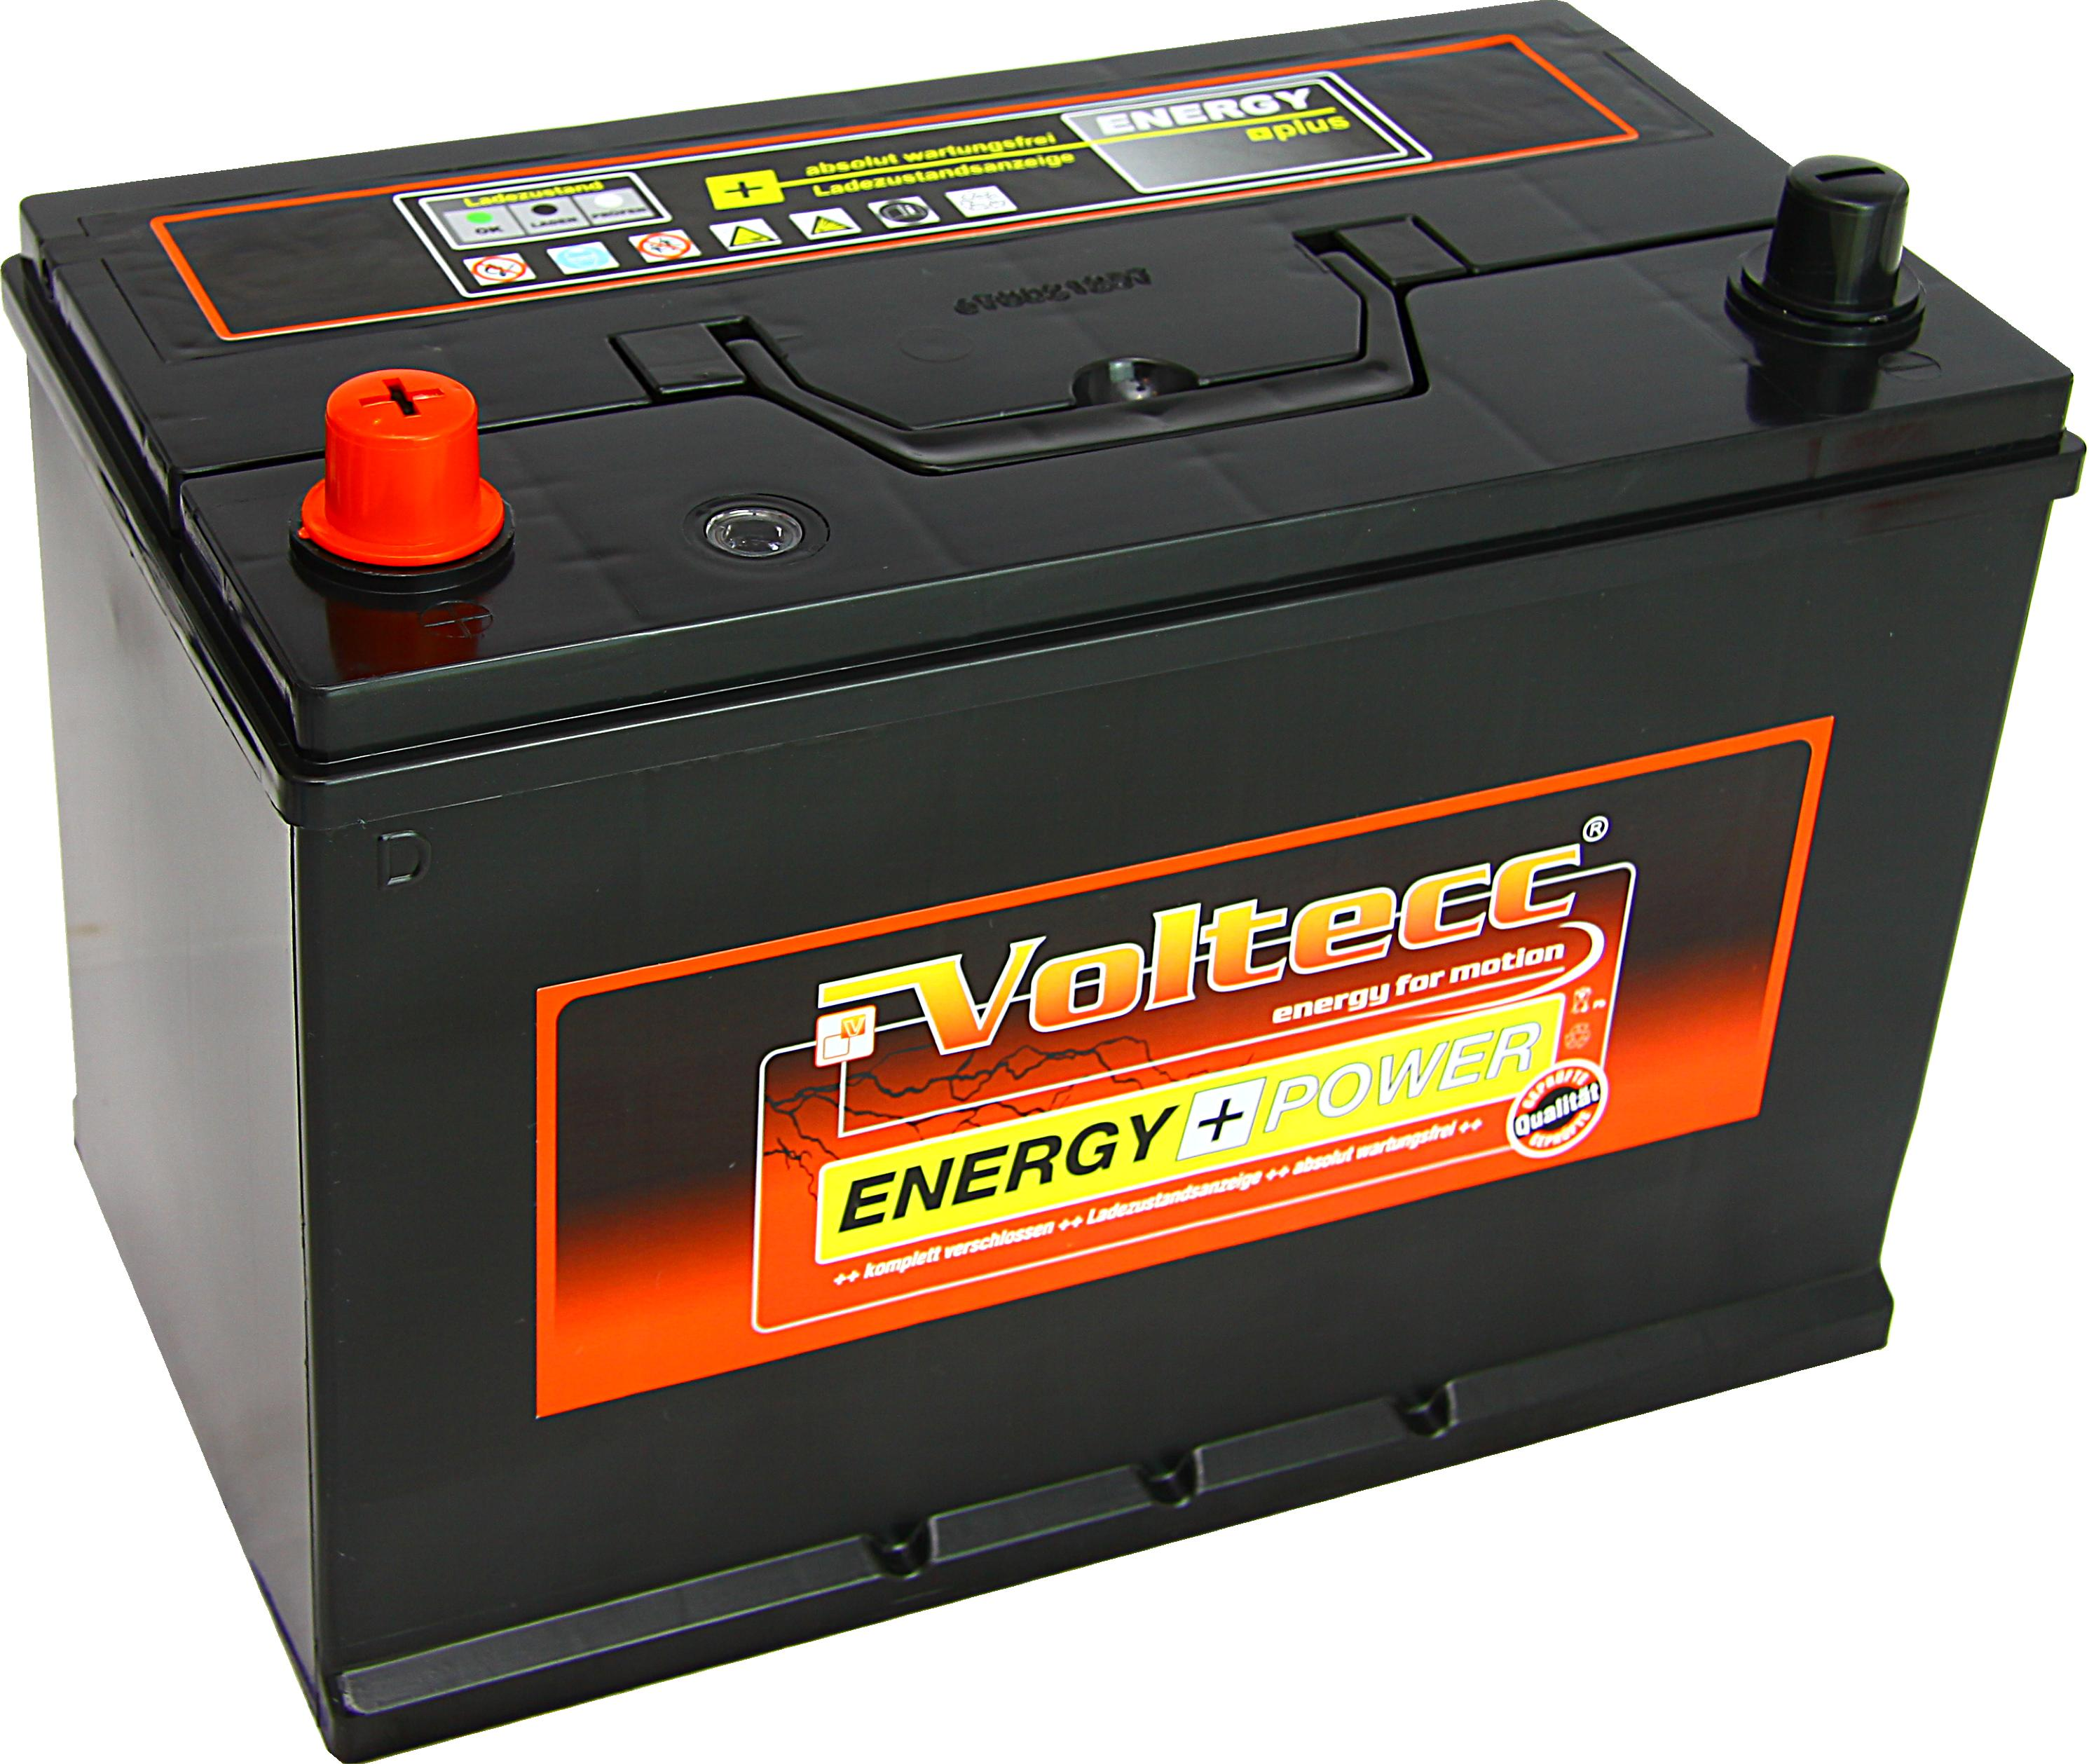 Voltecc Energy Asia 60033 12V 100Ah 680A Pluspol links